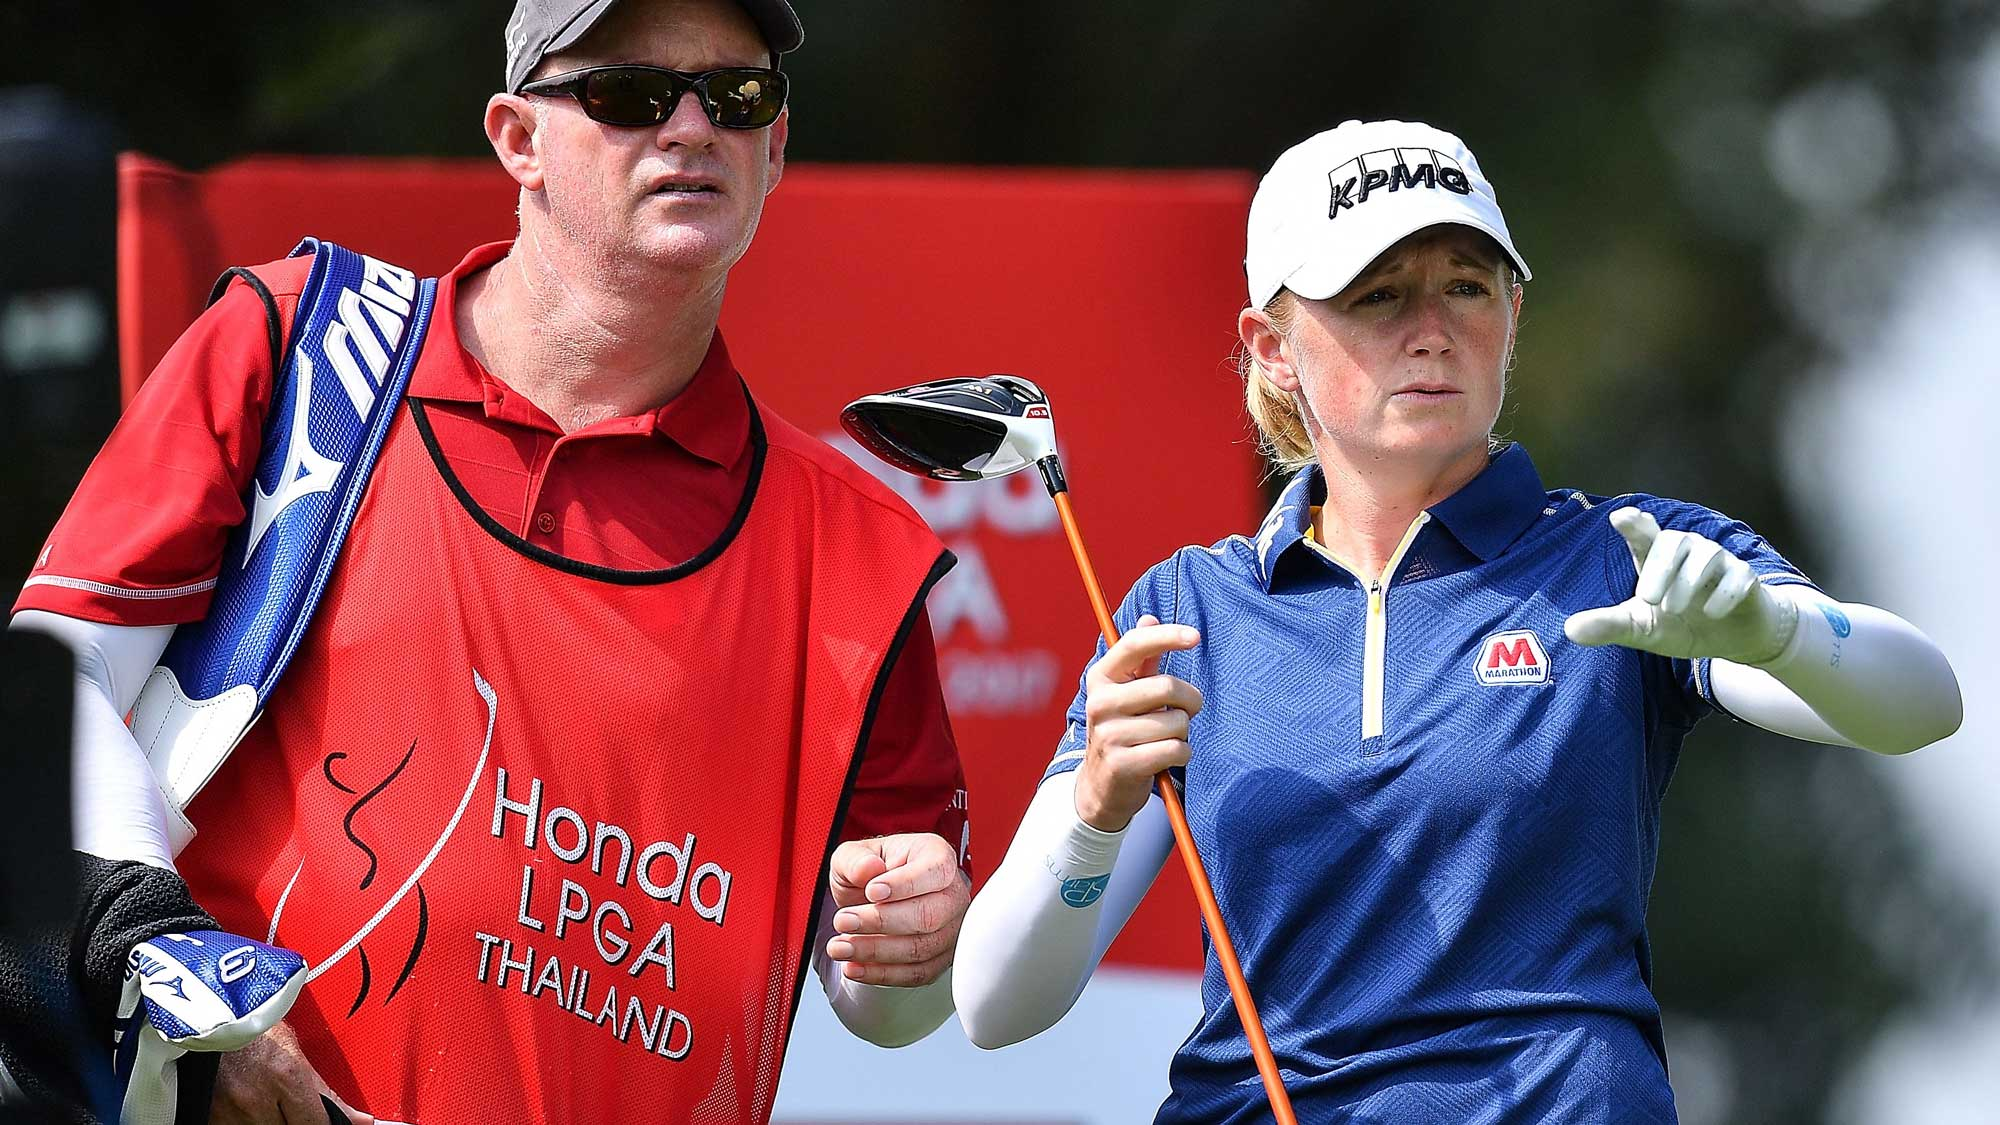 Stacy Lewis of United States talks with her caddy during the Honda LPGA Thailand